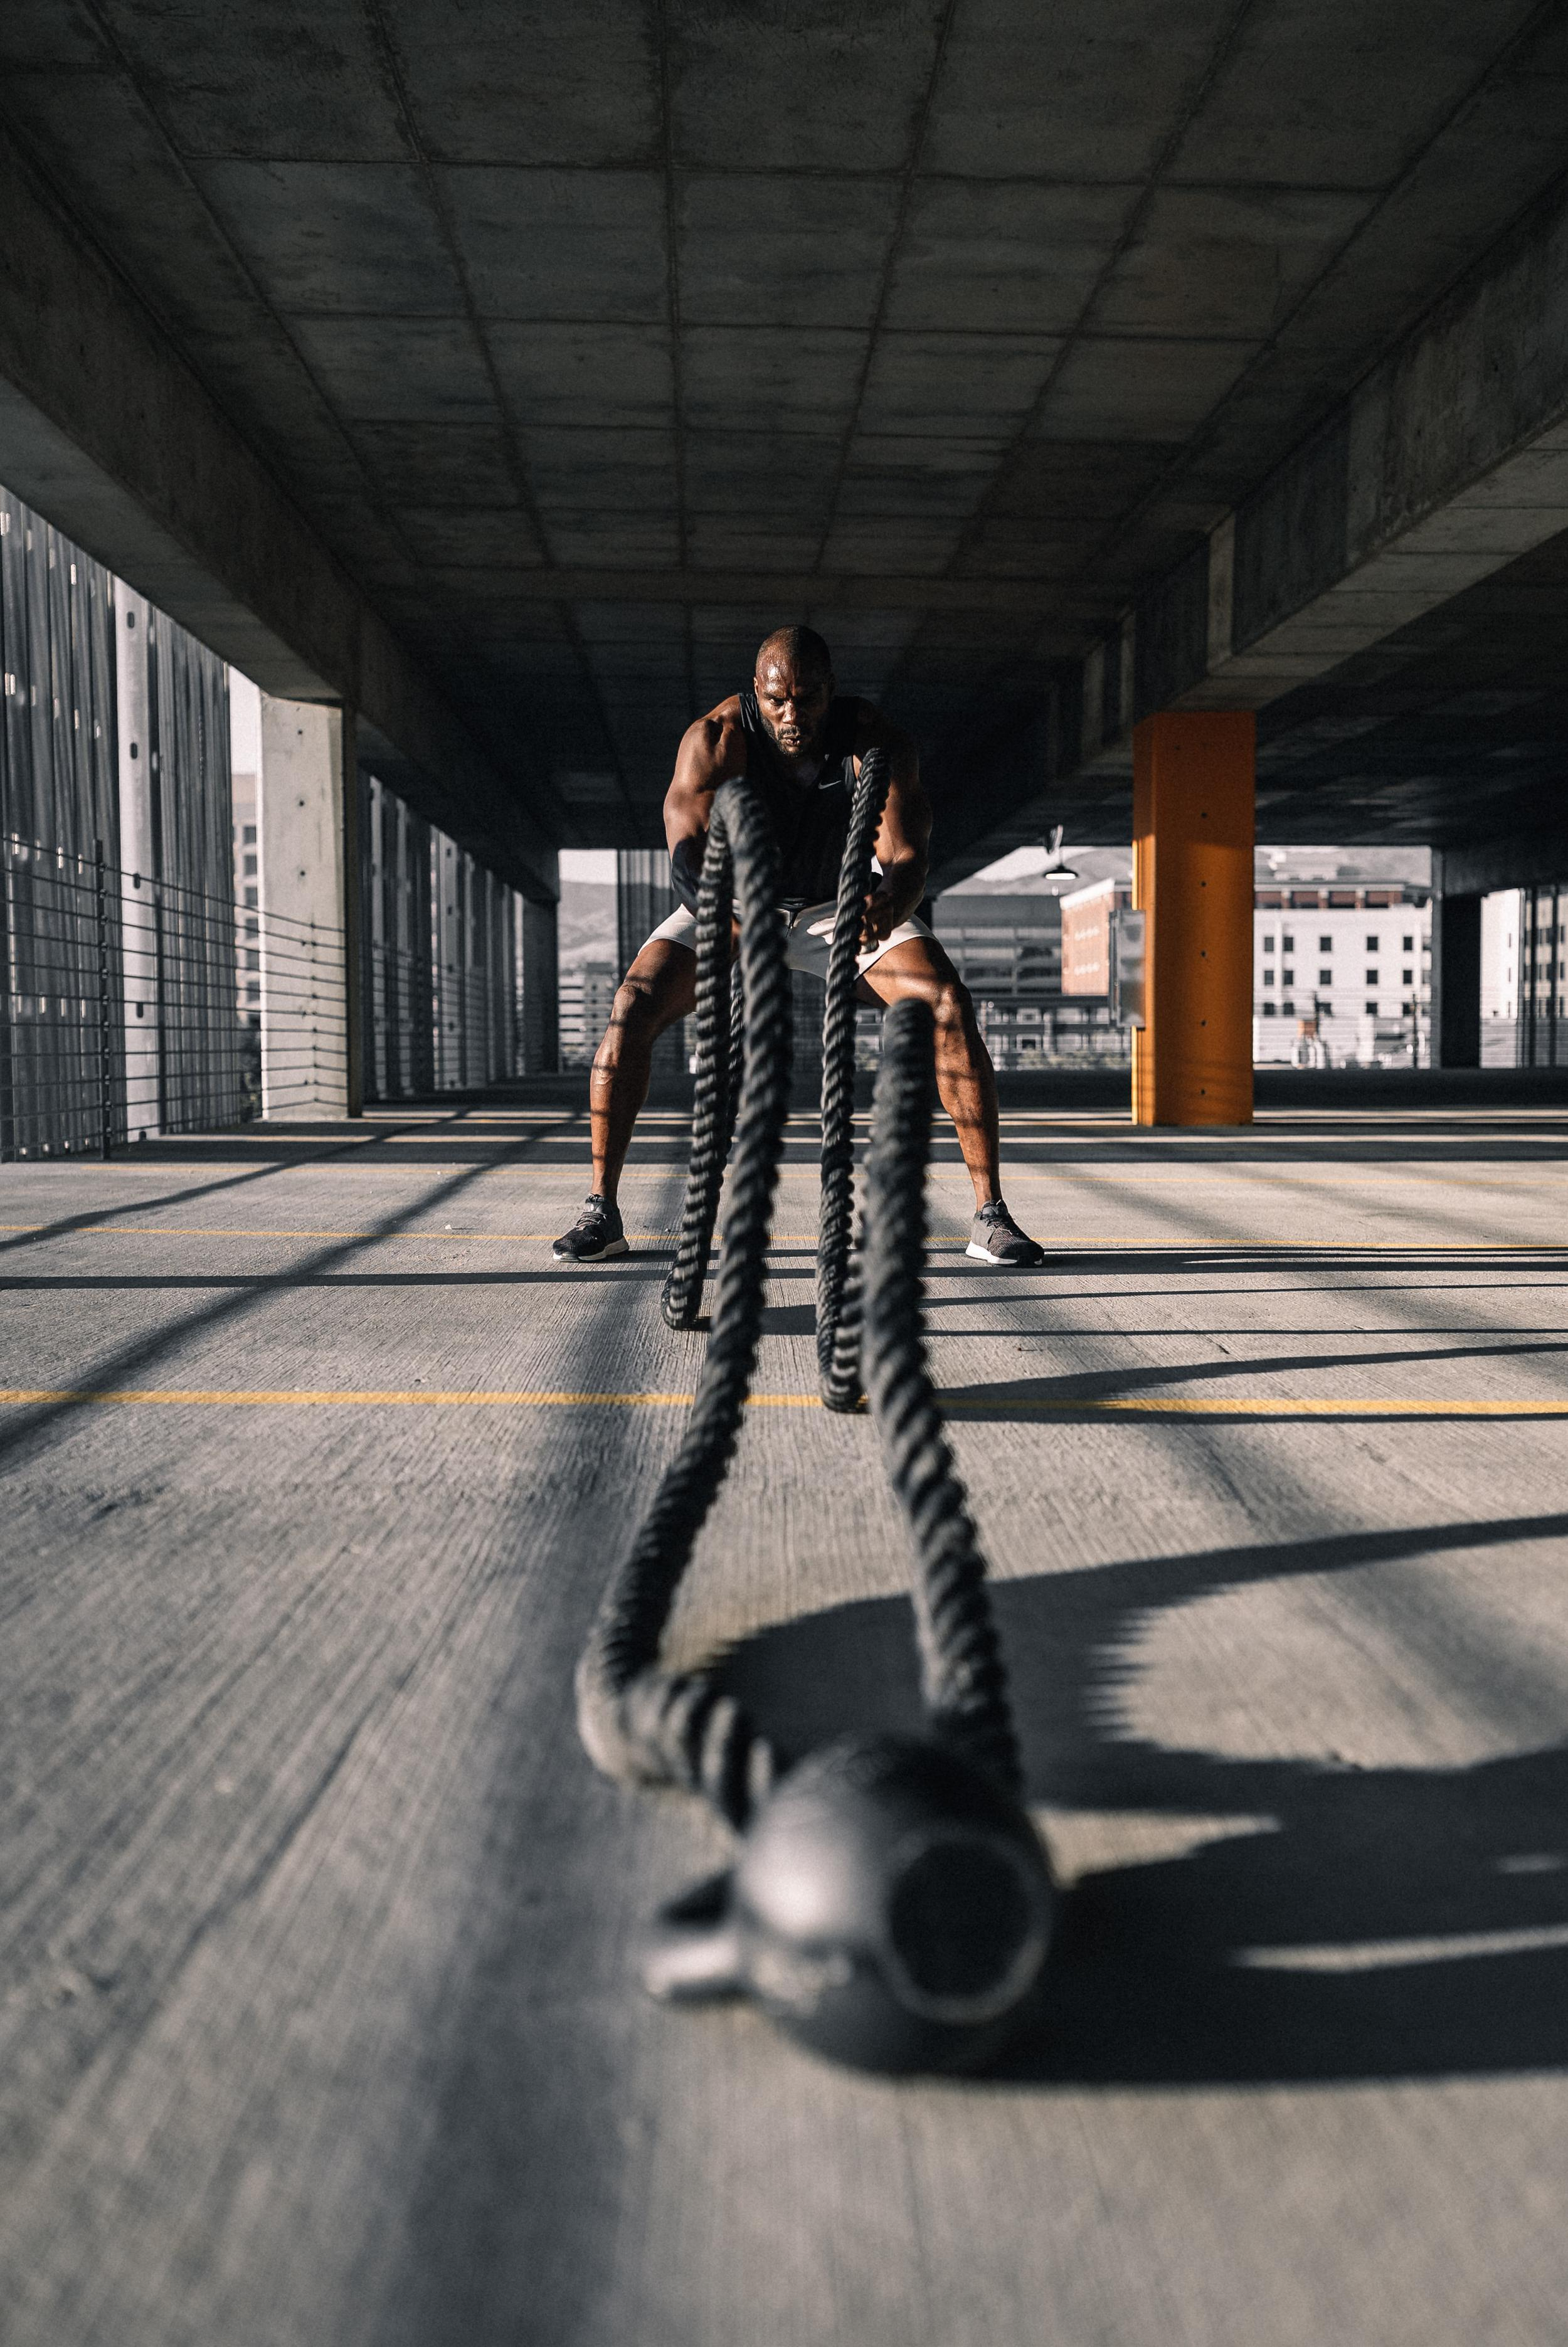 man working out with battle ropes in a parking structure